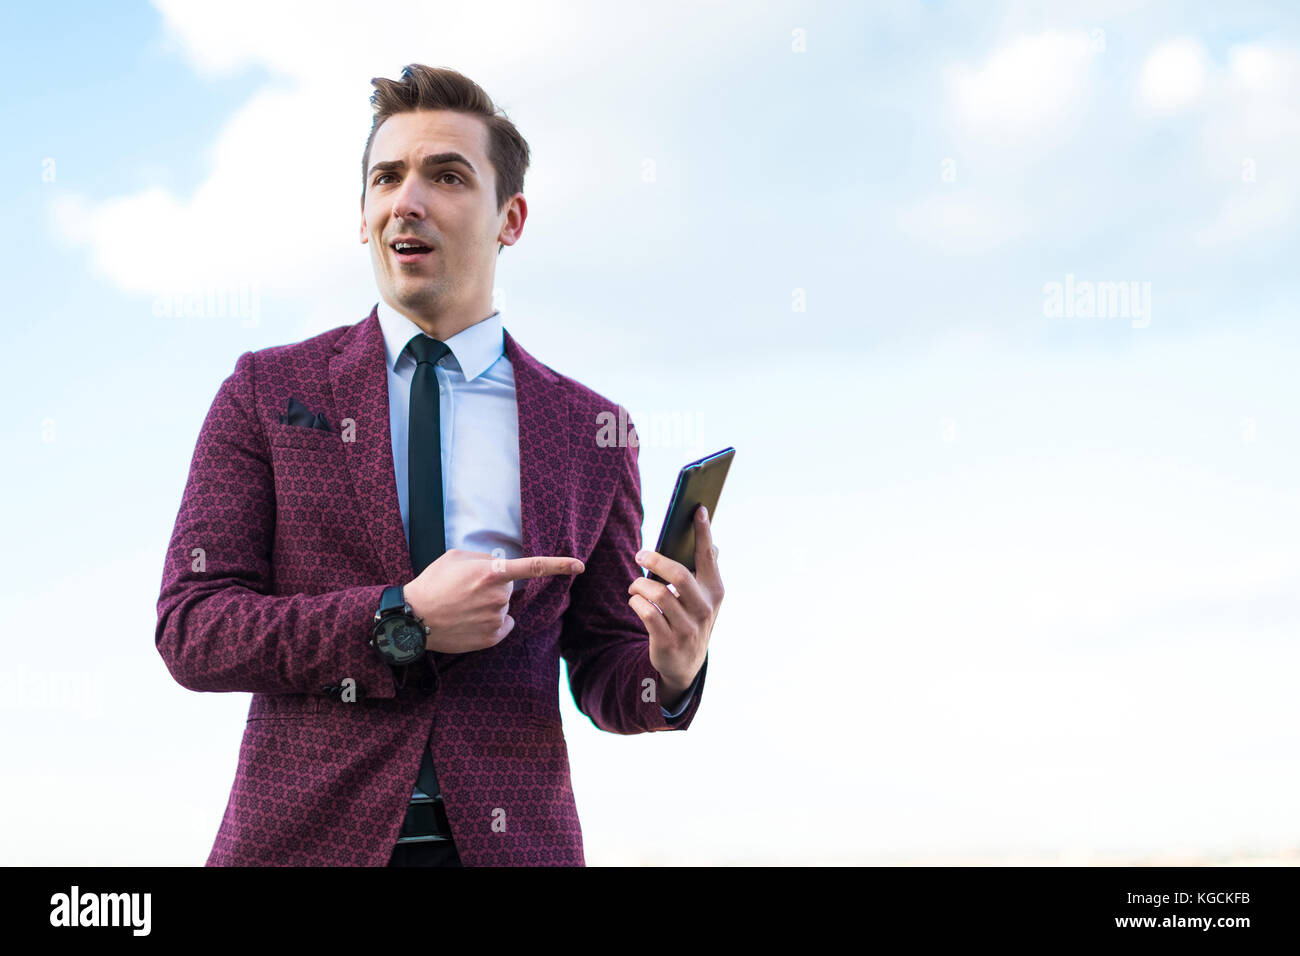 Young serious businessman in red suit and shirt with tie stand o - Stock Image